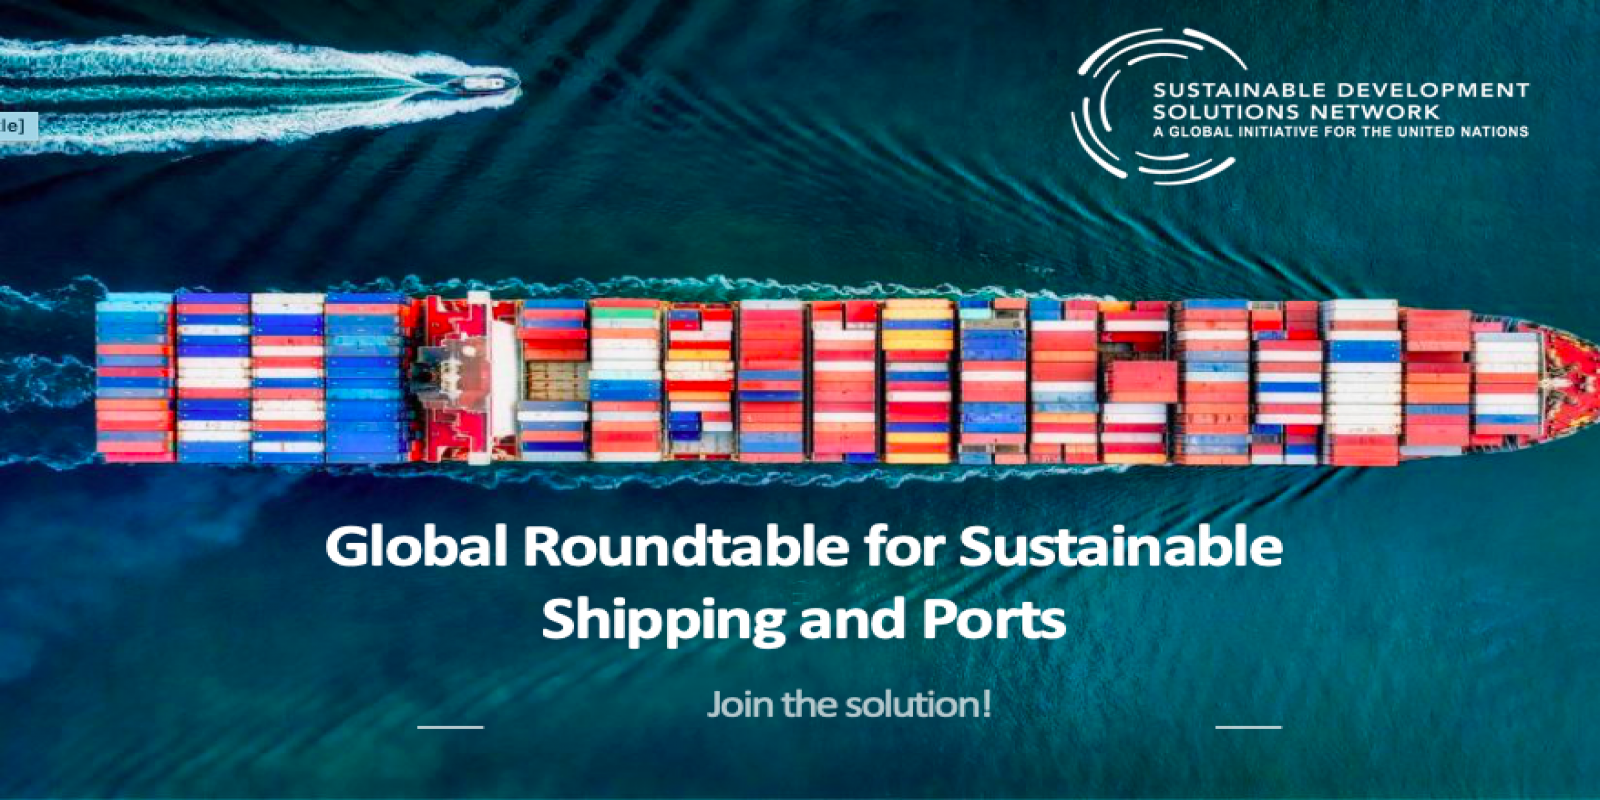 Global Roundtable for Sustainable Shipping and Ports